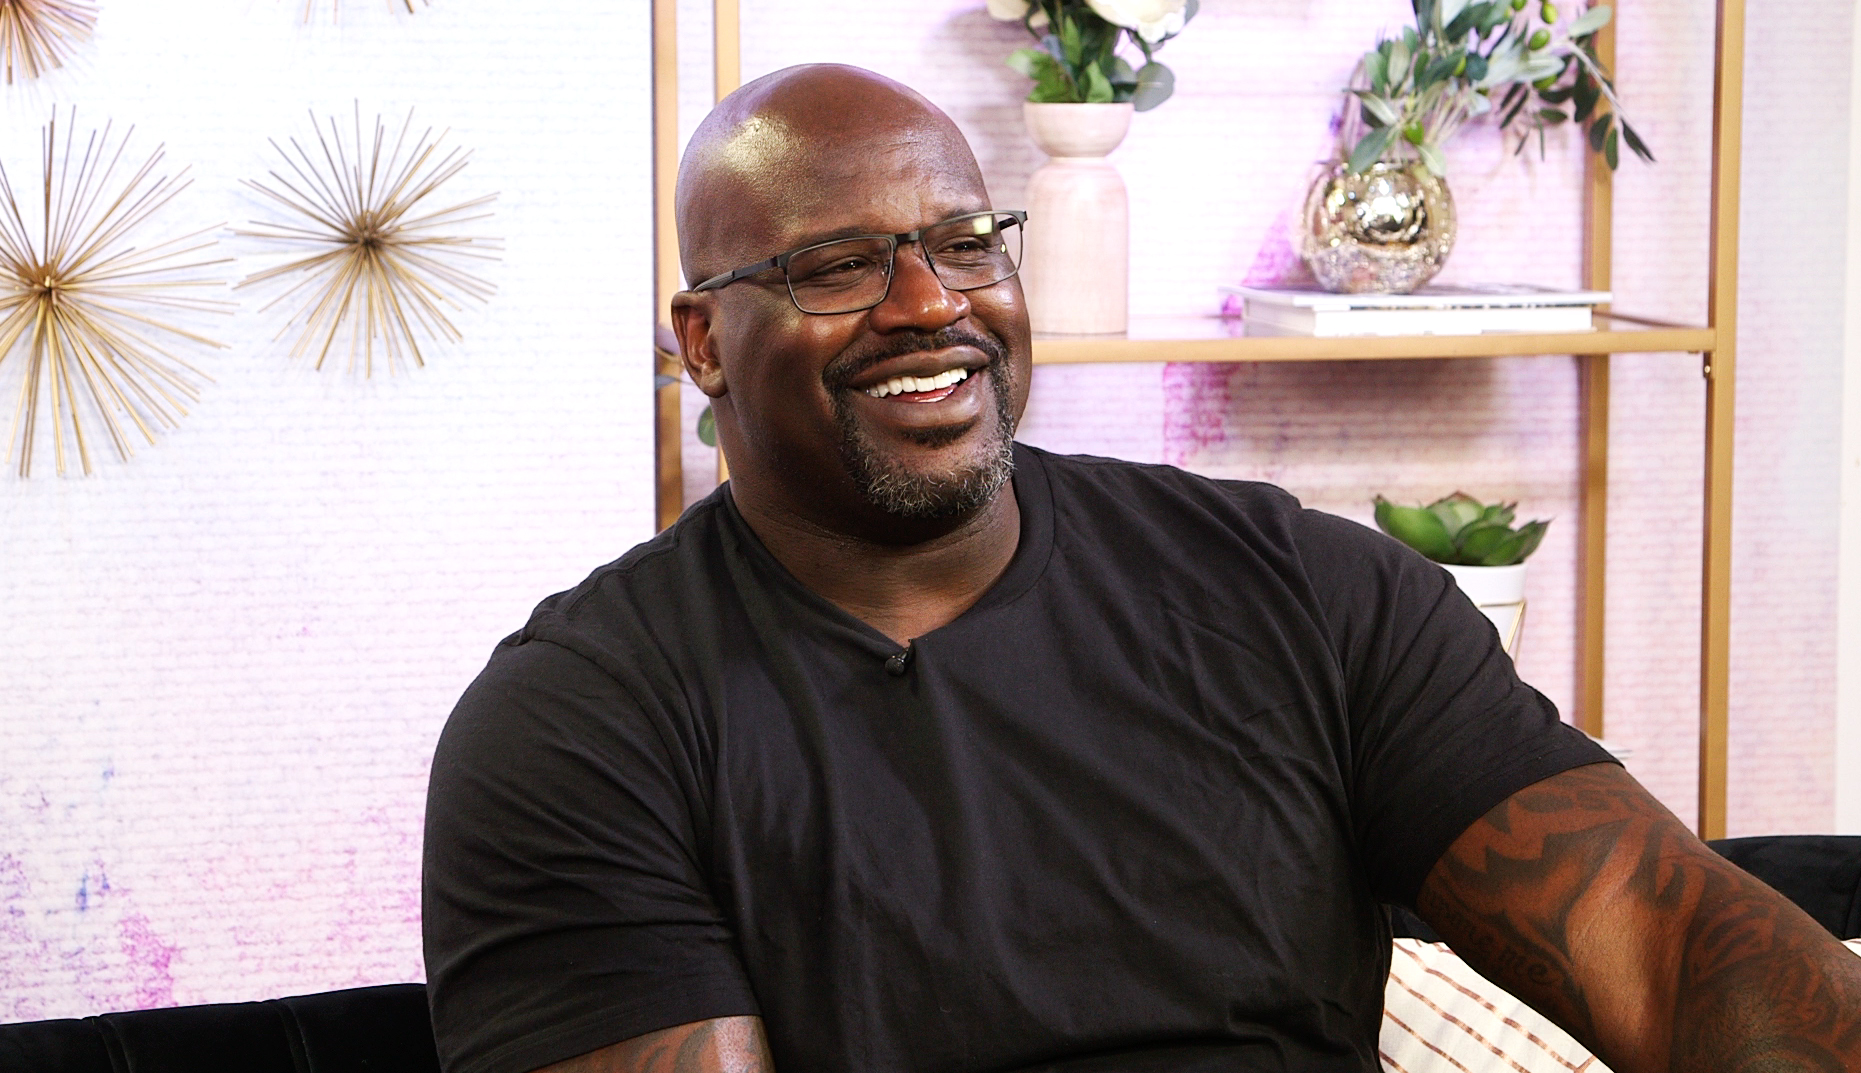 Shaquille-O'Neal-Reveals-Rules-for-Raising-Daughters